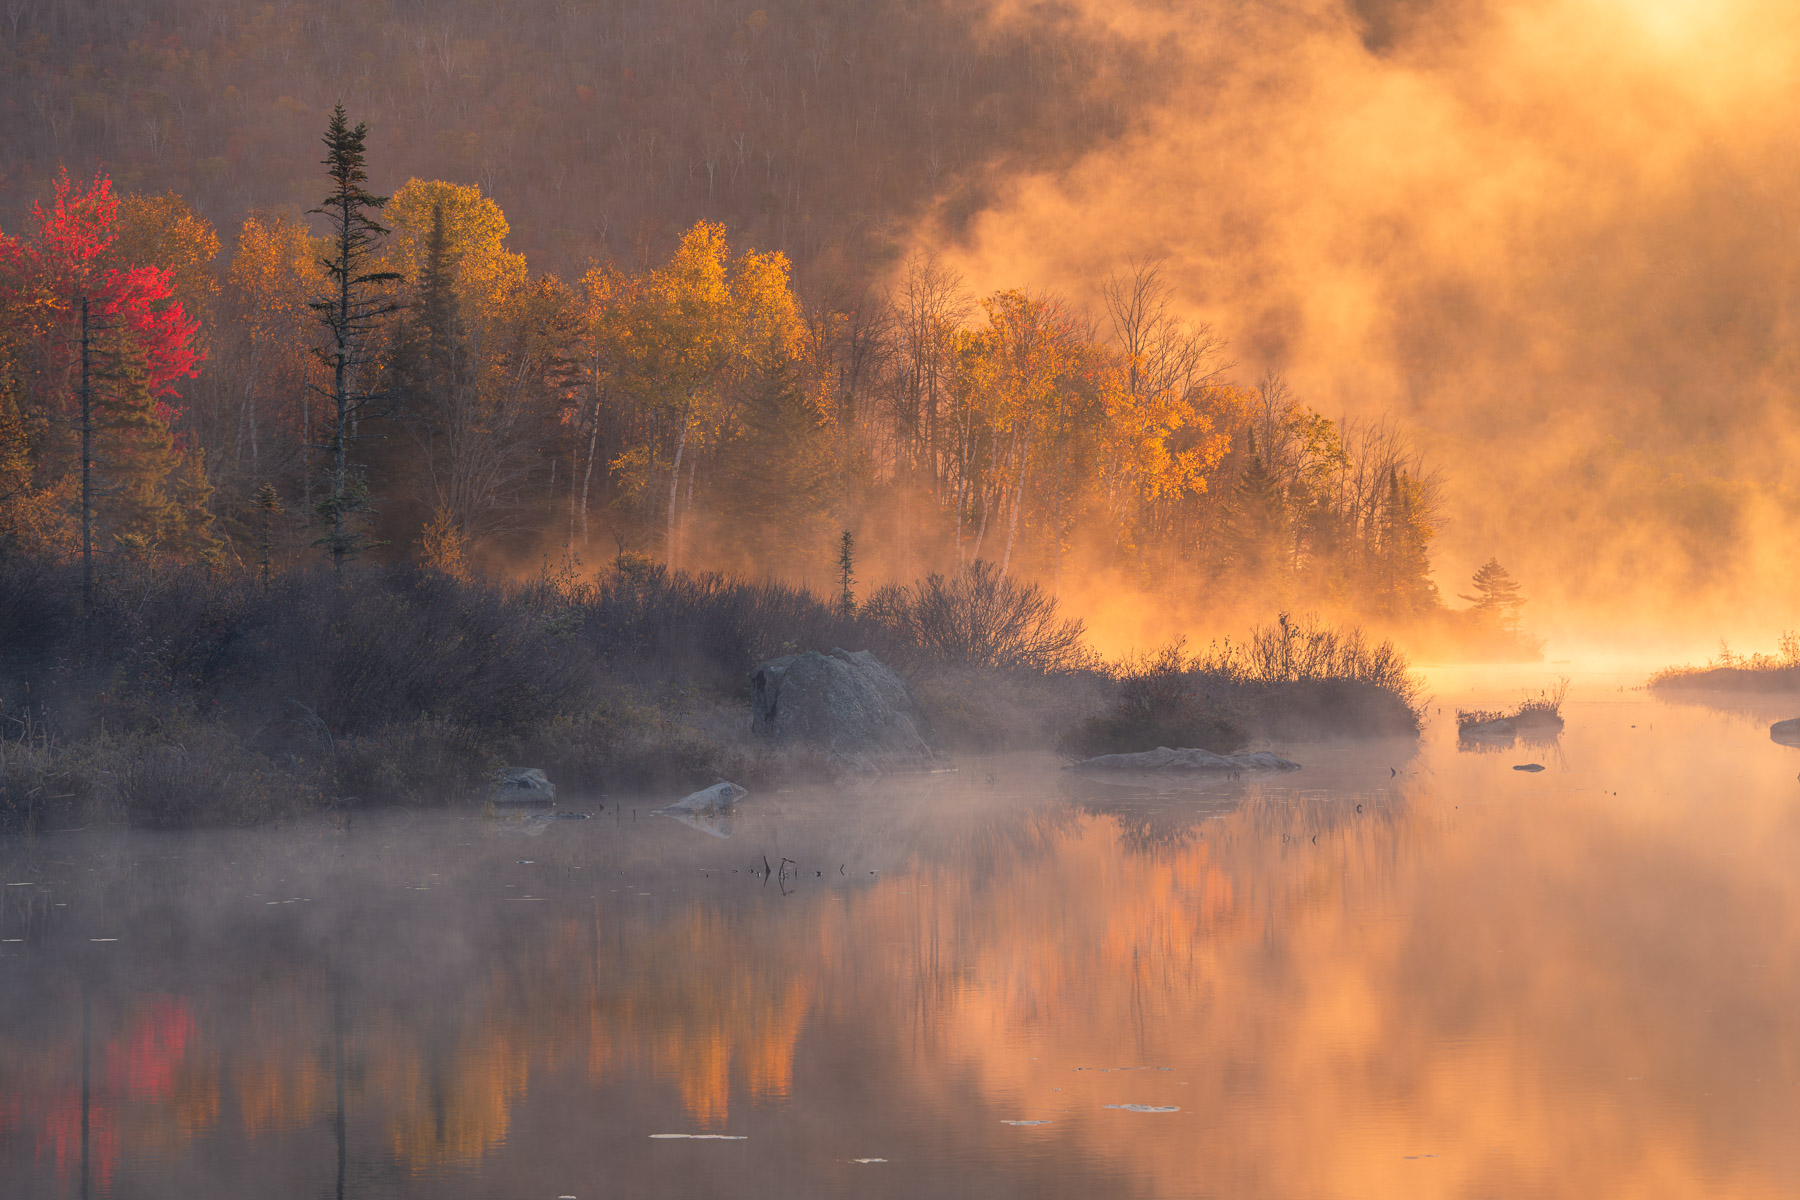 Morning fog illuminated by the first rays of light, Turtlehead Pond, Vermont.